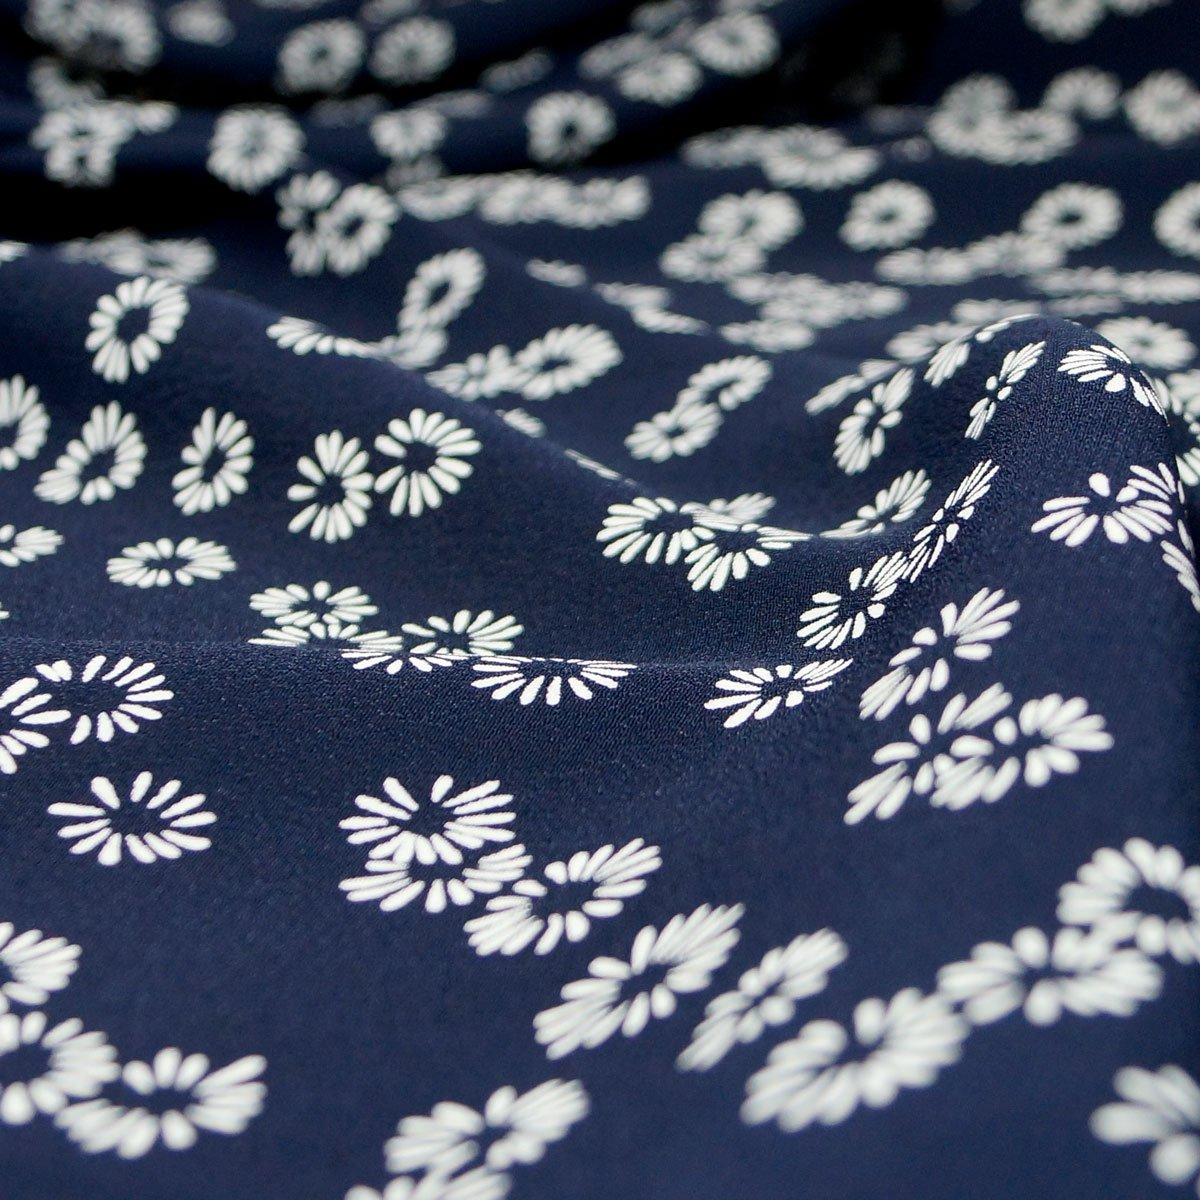 Rayon - Navy with Ivory Flowers